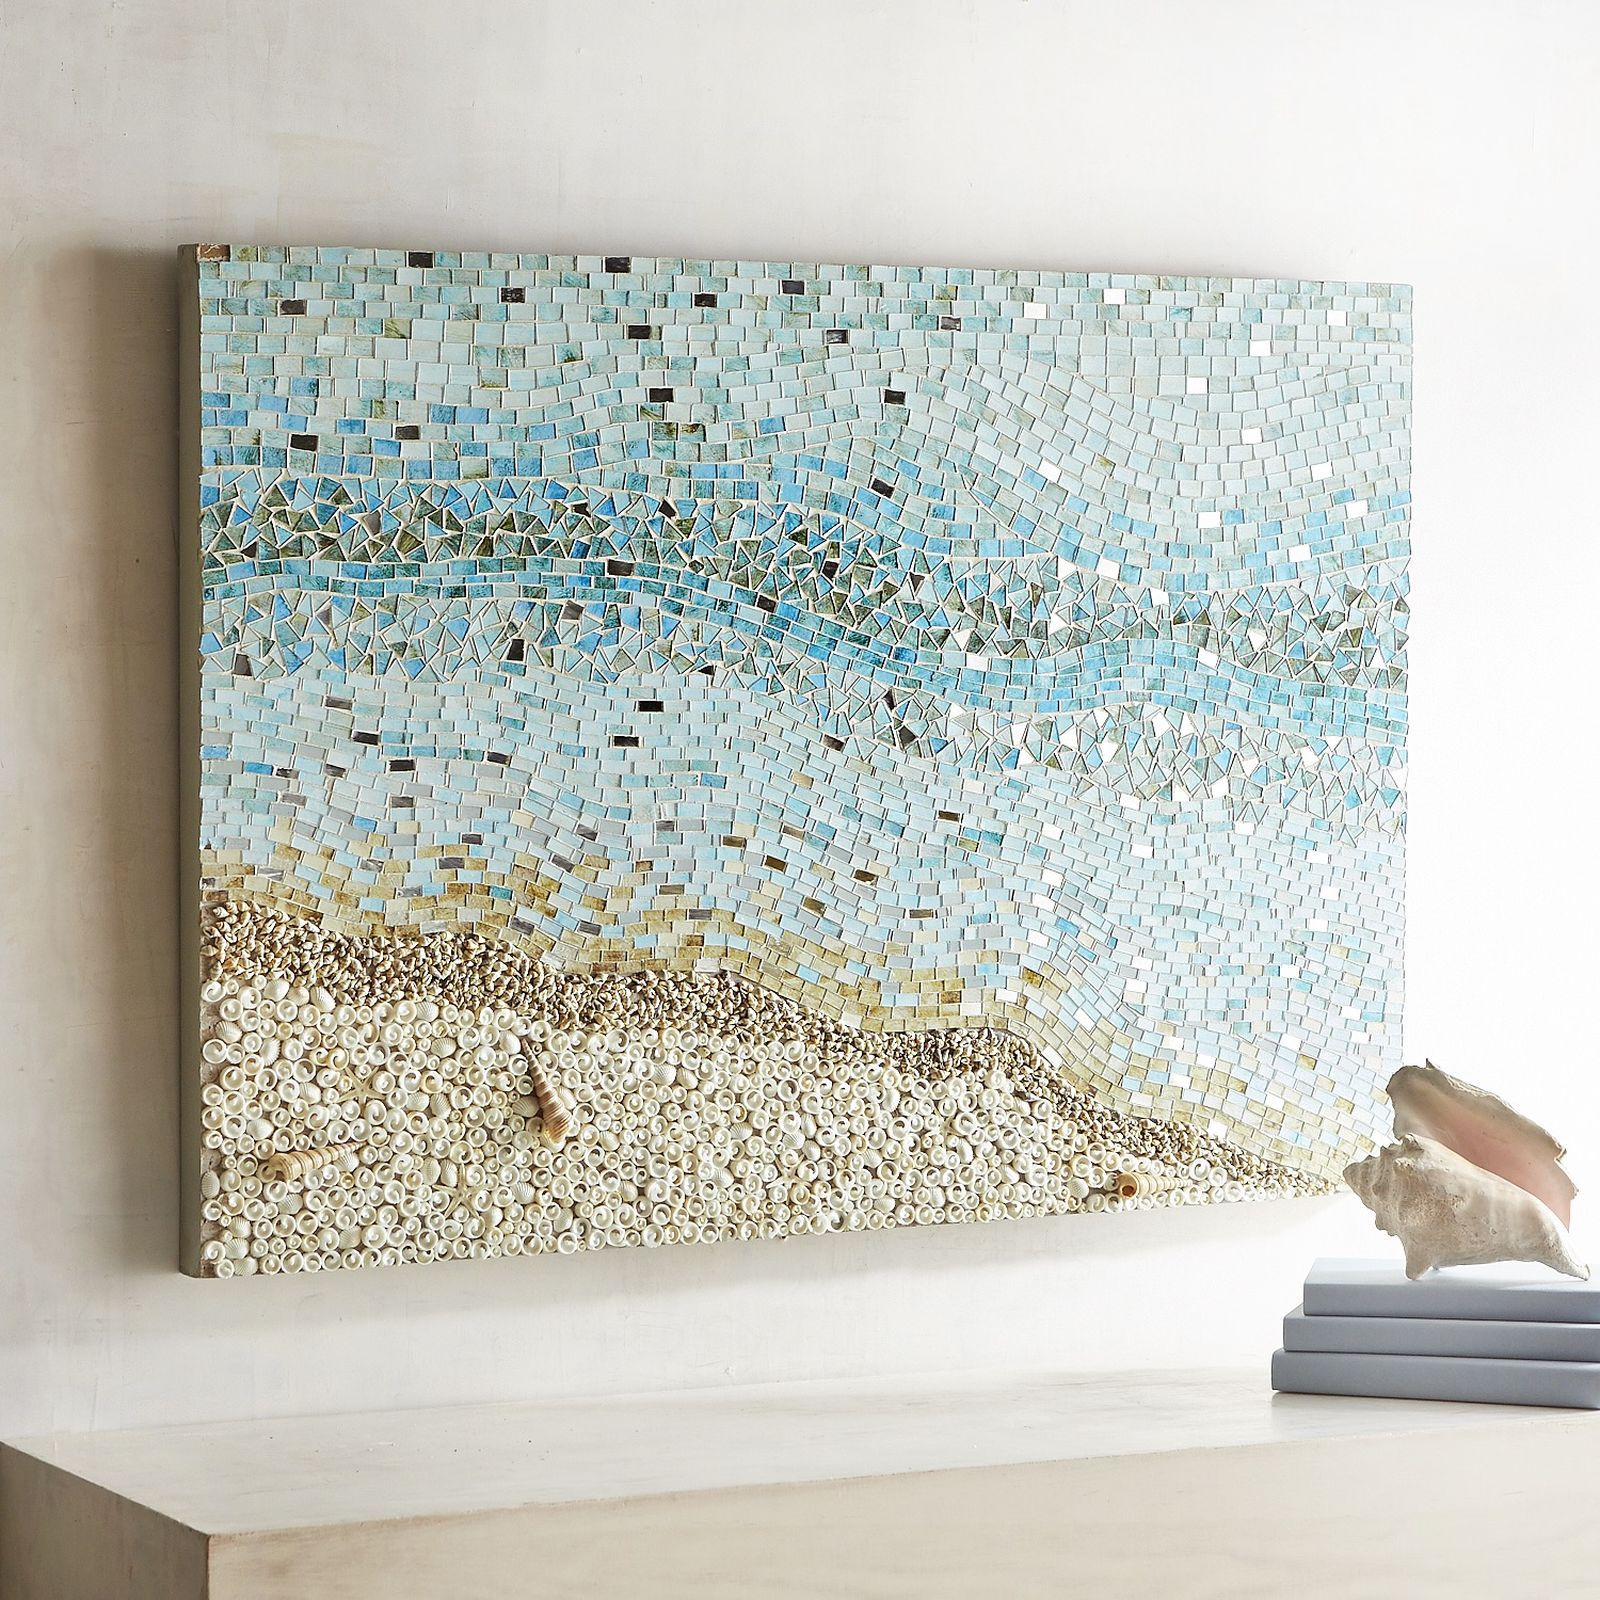 Cool Coastal Vibes With A Modern Touch Our Exclusive Wall Panel Reflects A Serene Shell Covered Beach And Coastal Wall Art Mosaic Wall Art Coastal Wall Decor